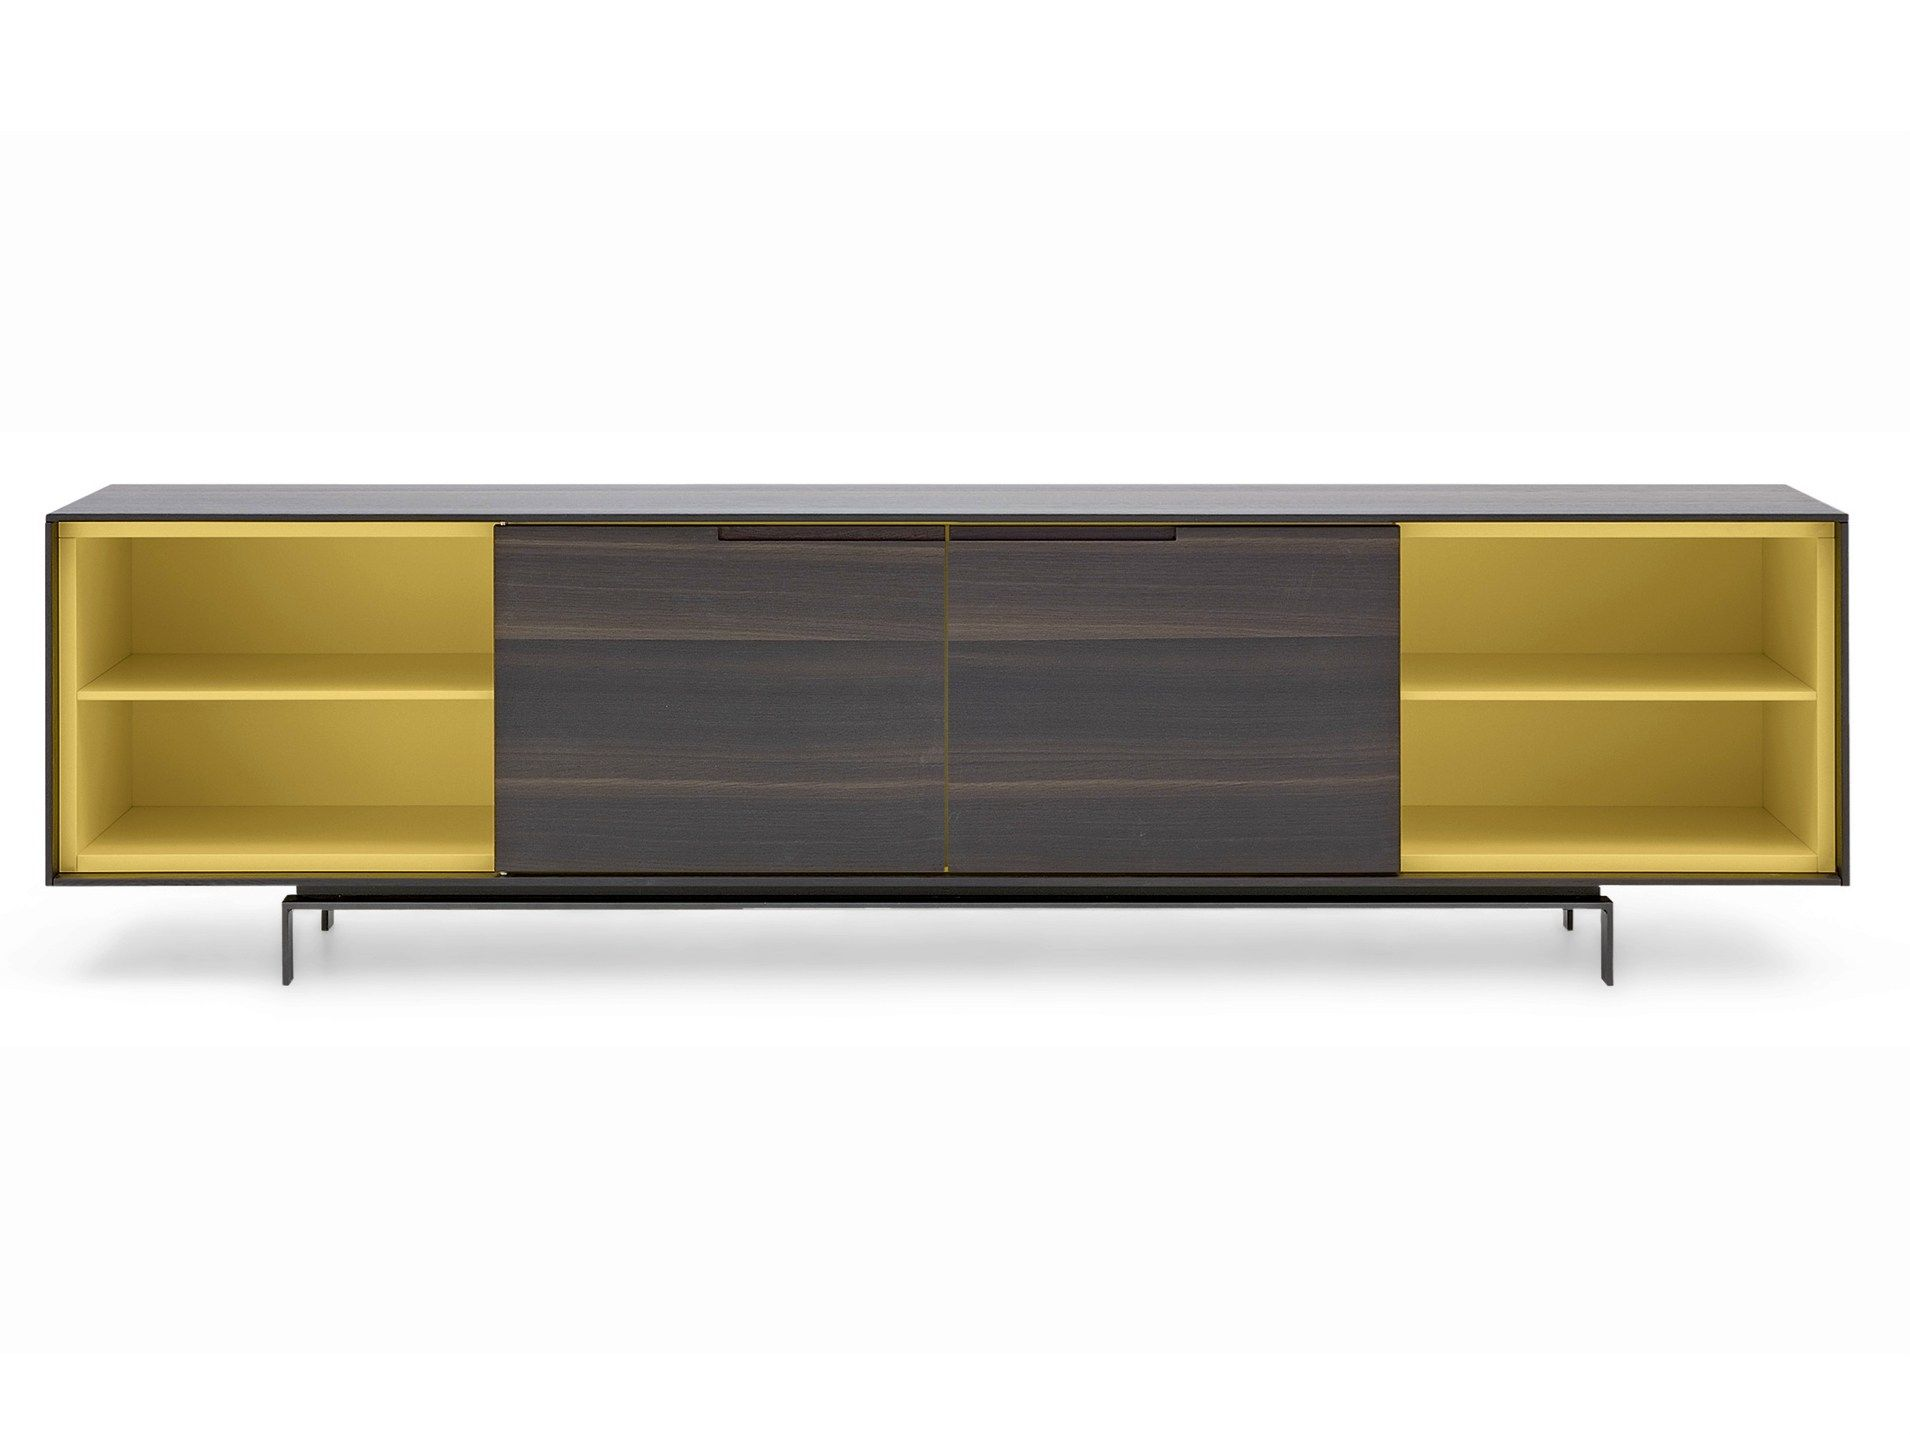 Buffet Laque En Chene Meuble Design Mobilier Italien Buffet Laque